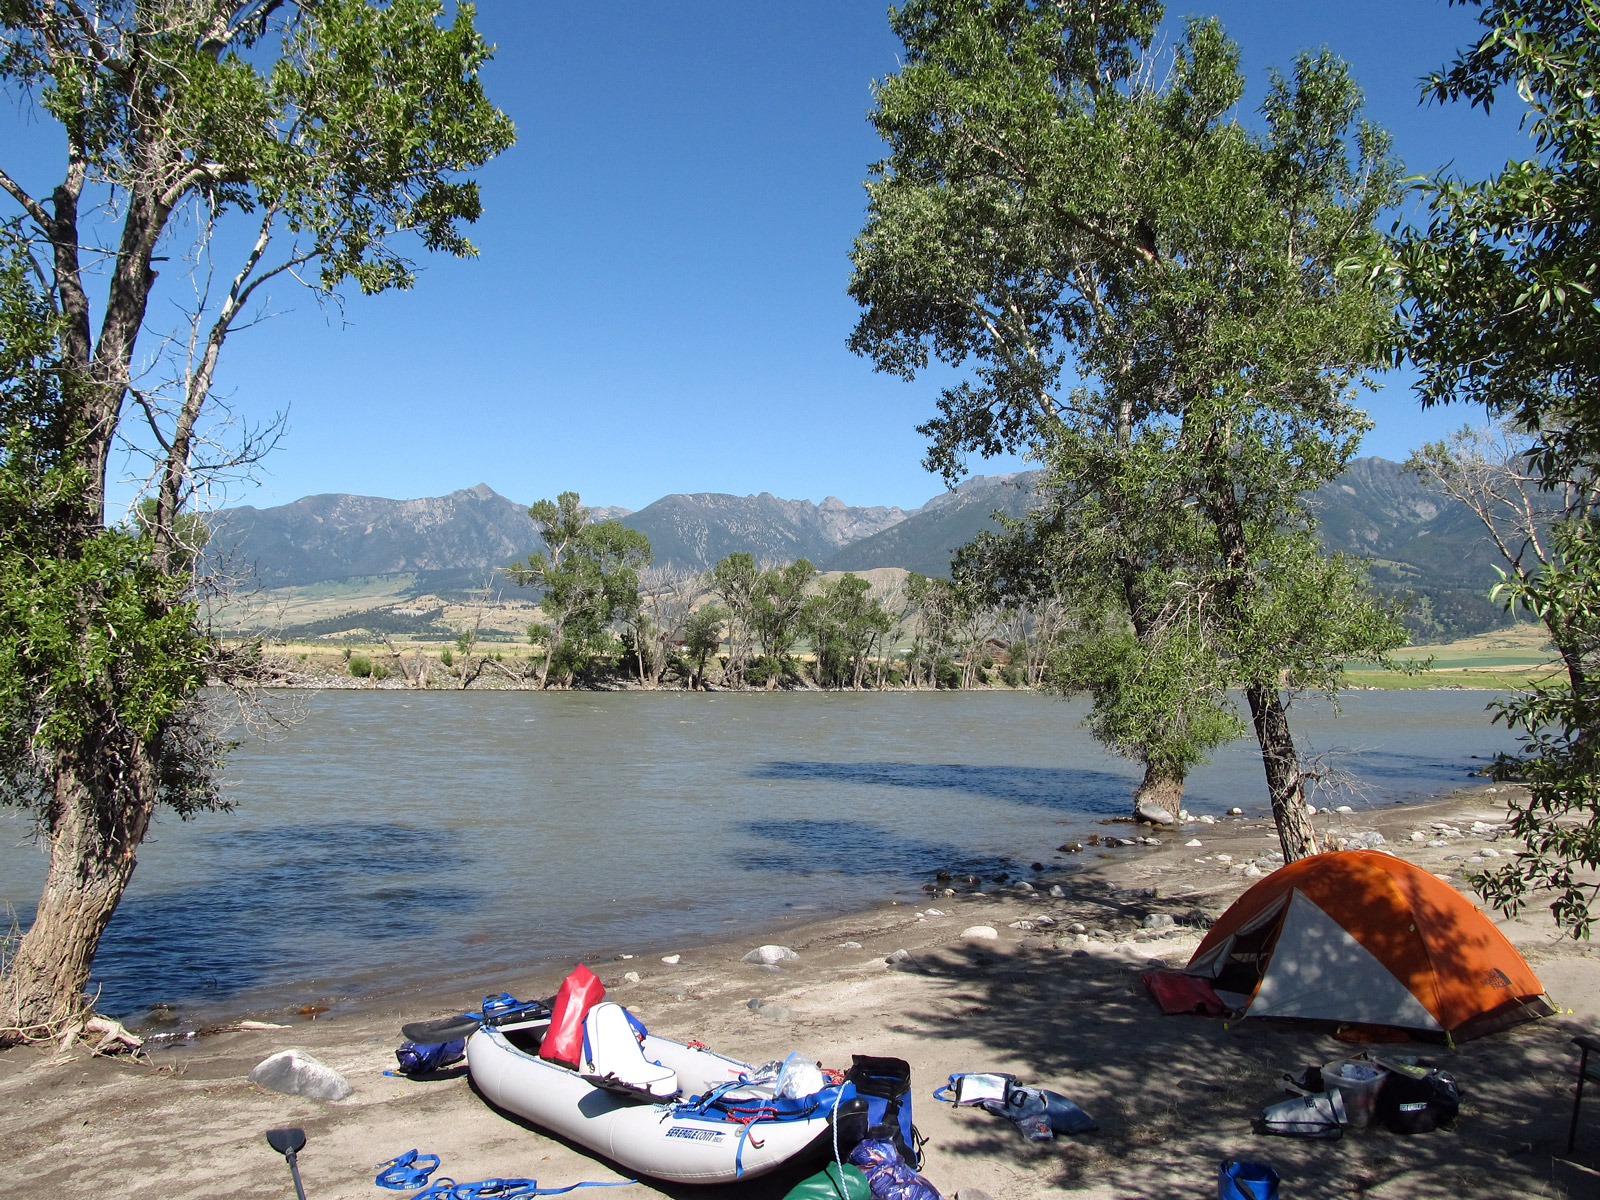 Camped along the Yellowstone River at Mallard's Rest Fishing Access Site